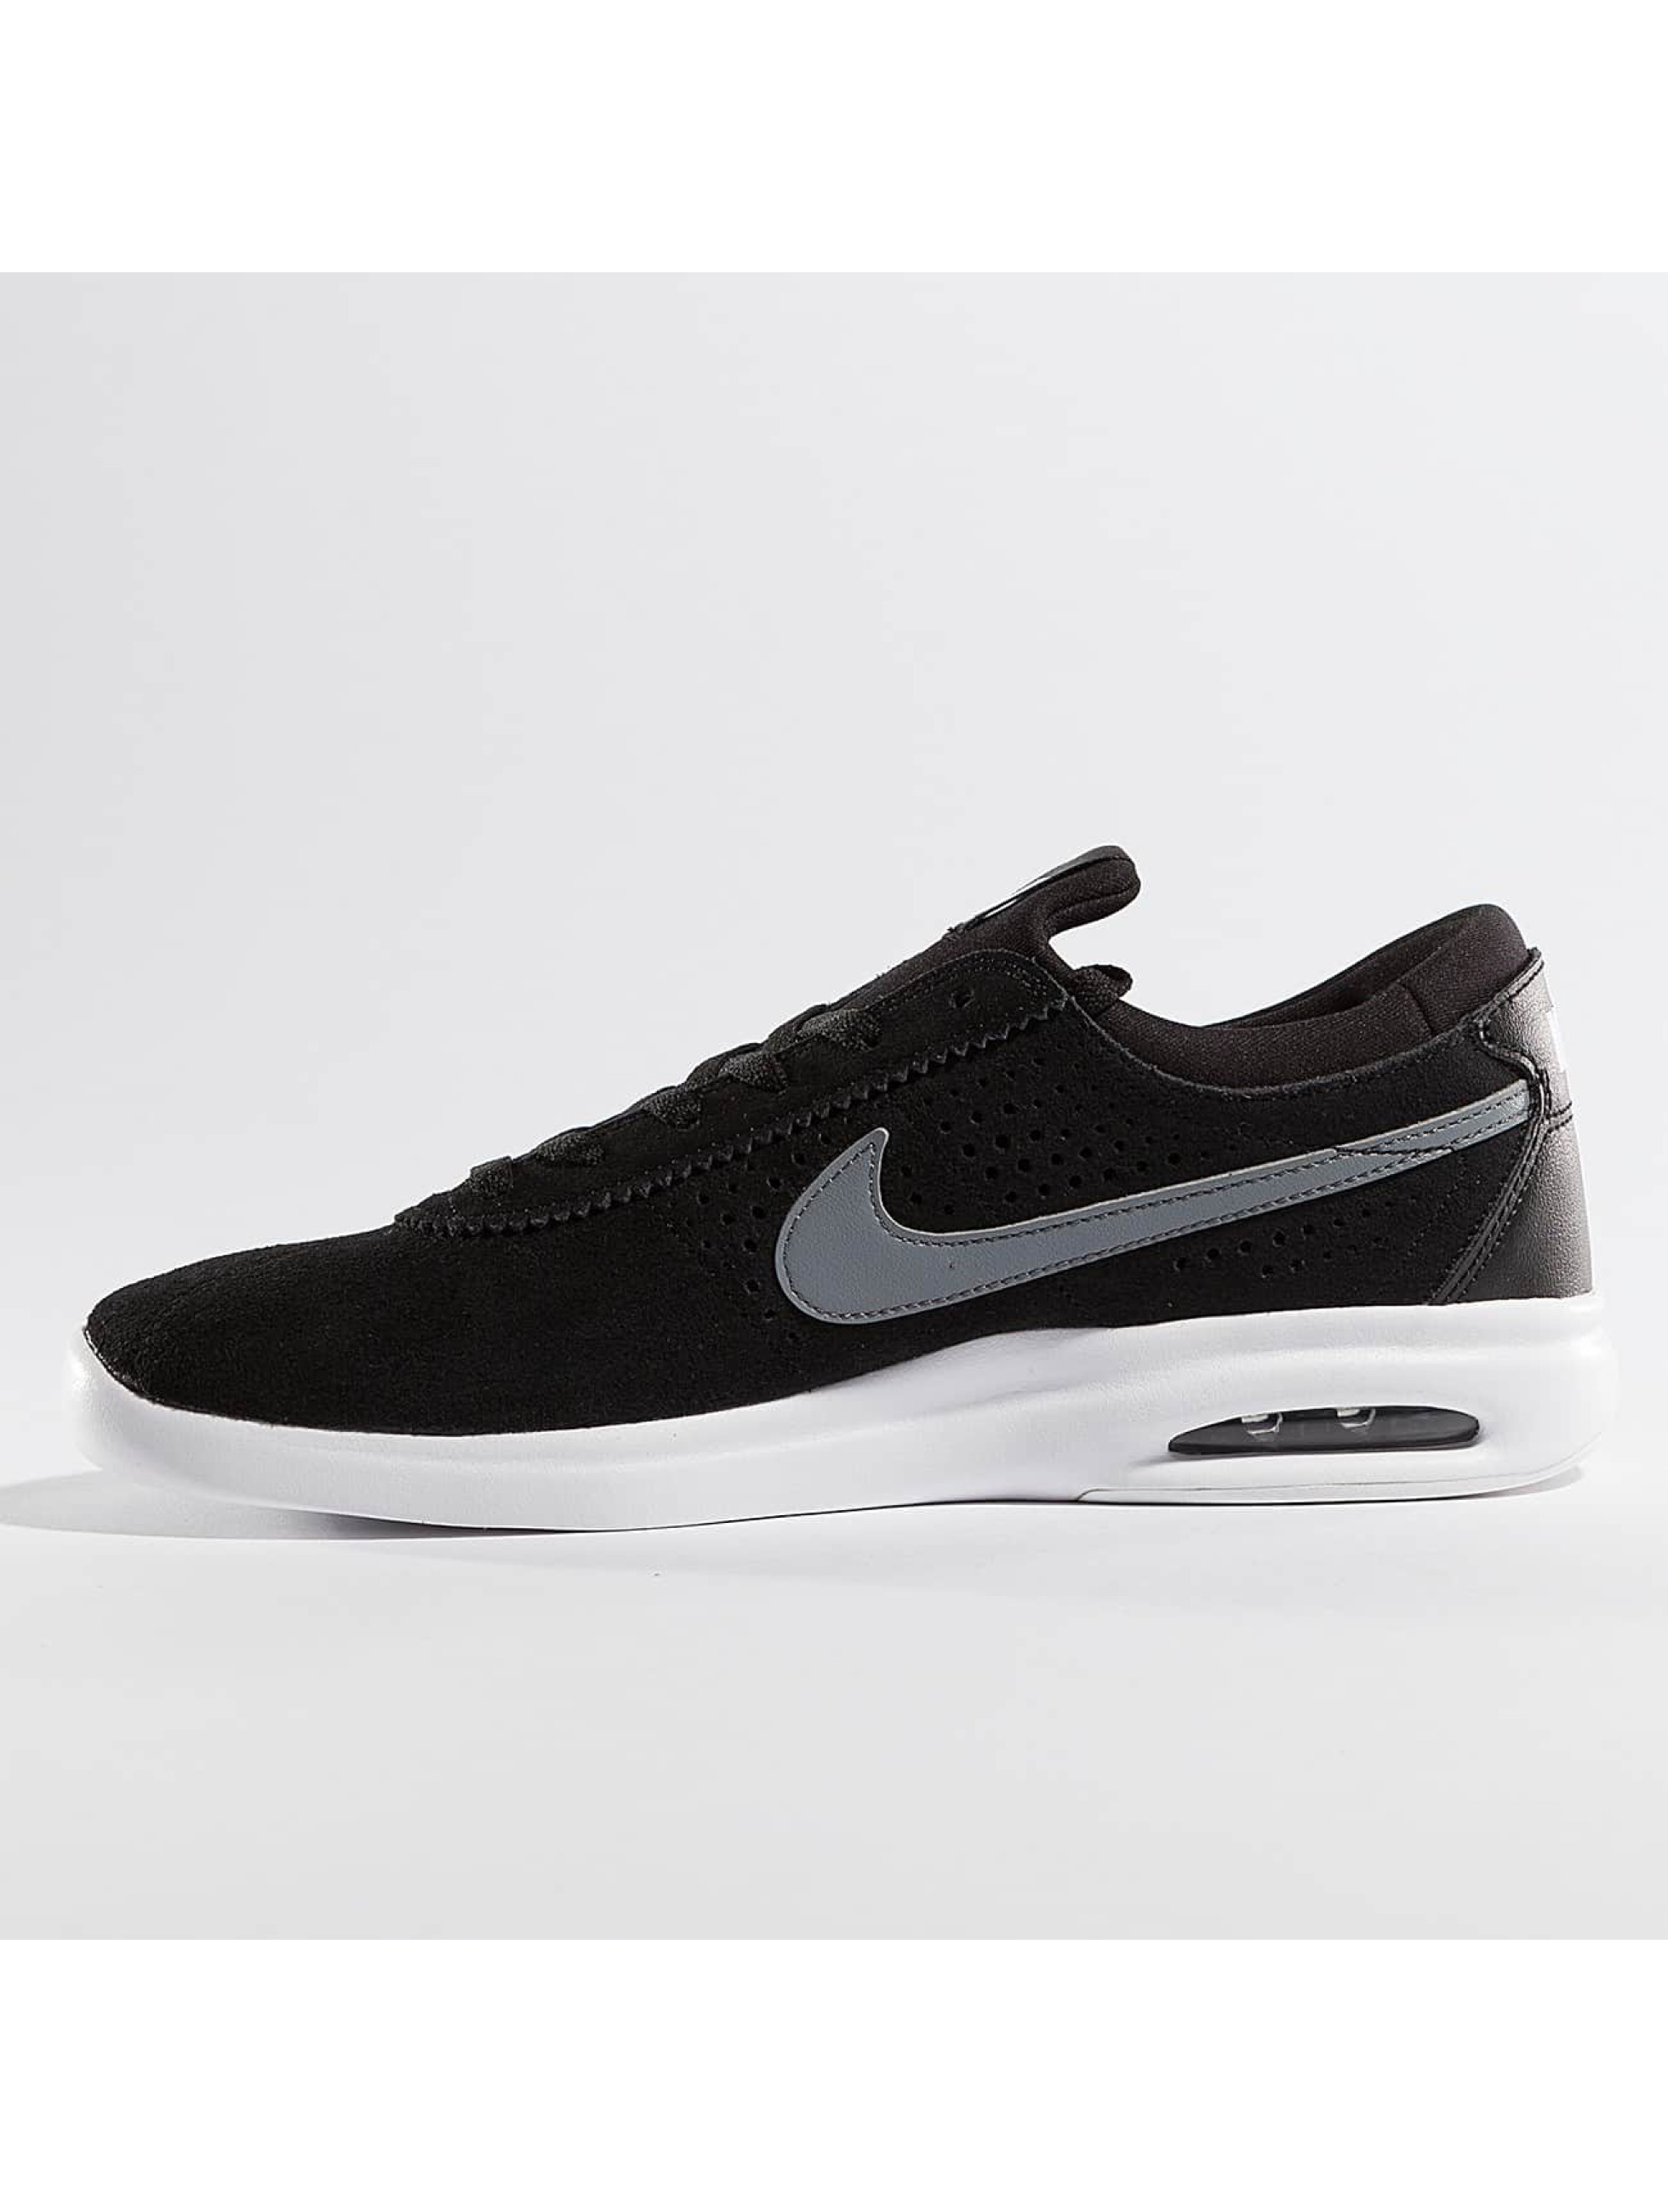 Nike SB Sneakers Air Max Bruin Vapor Skateboarding black